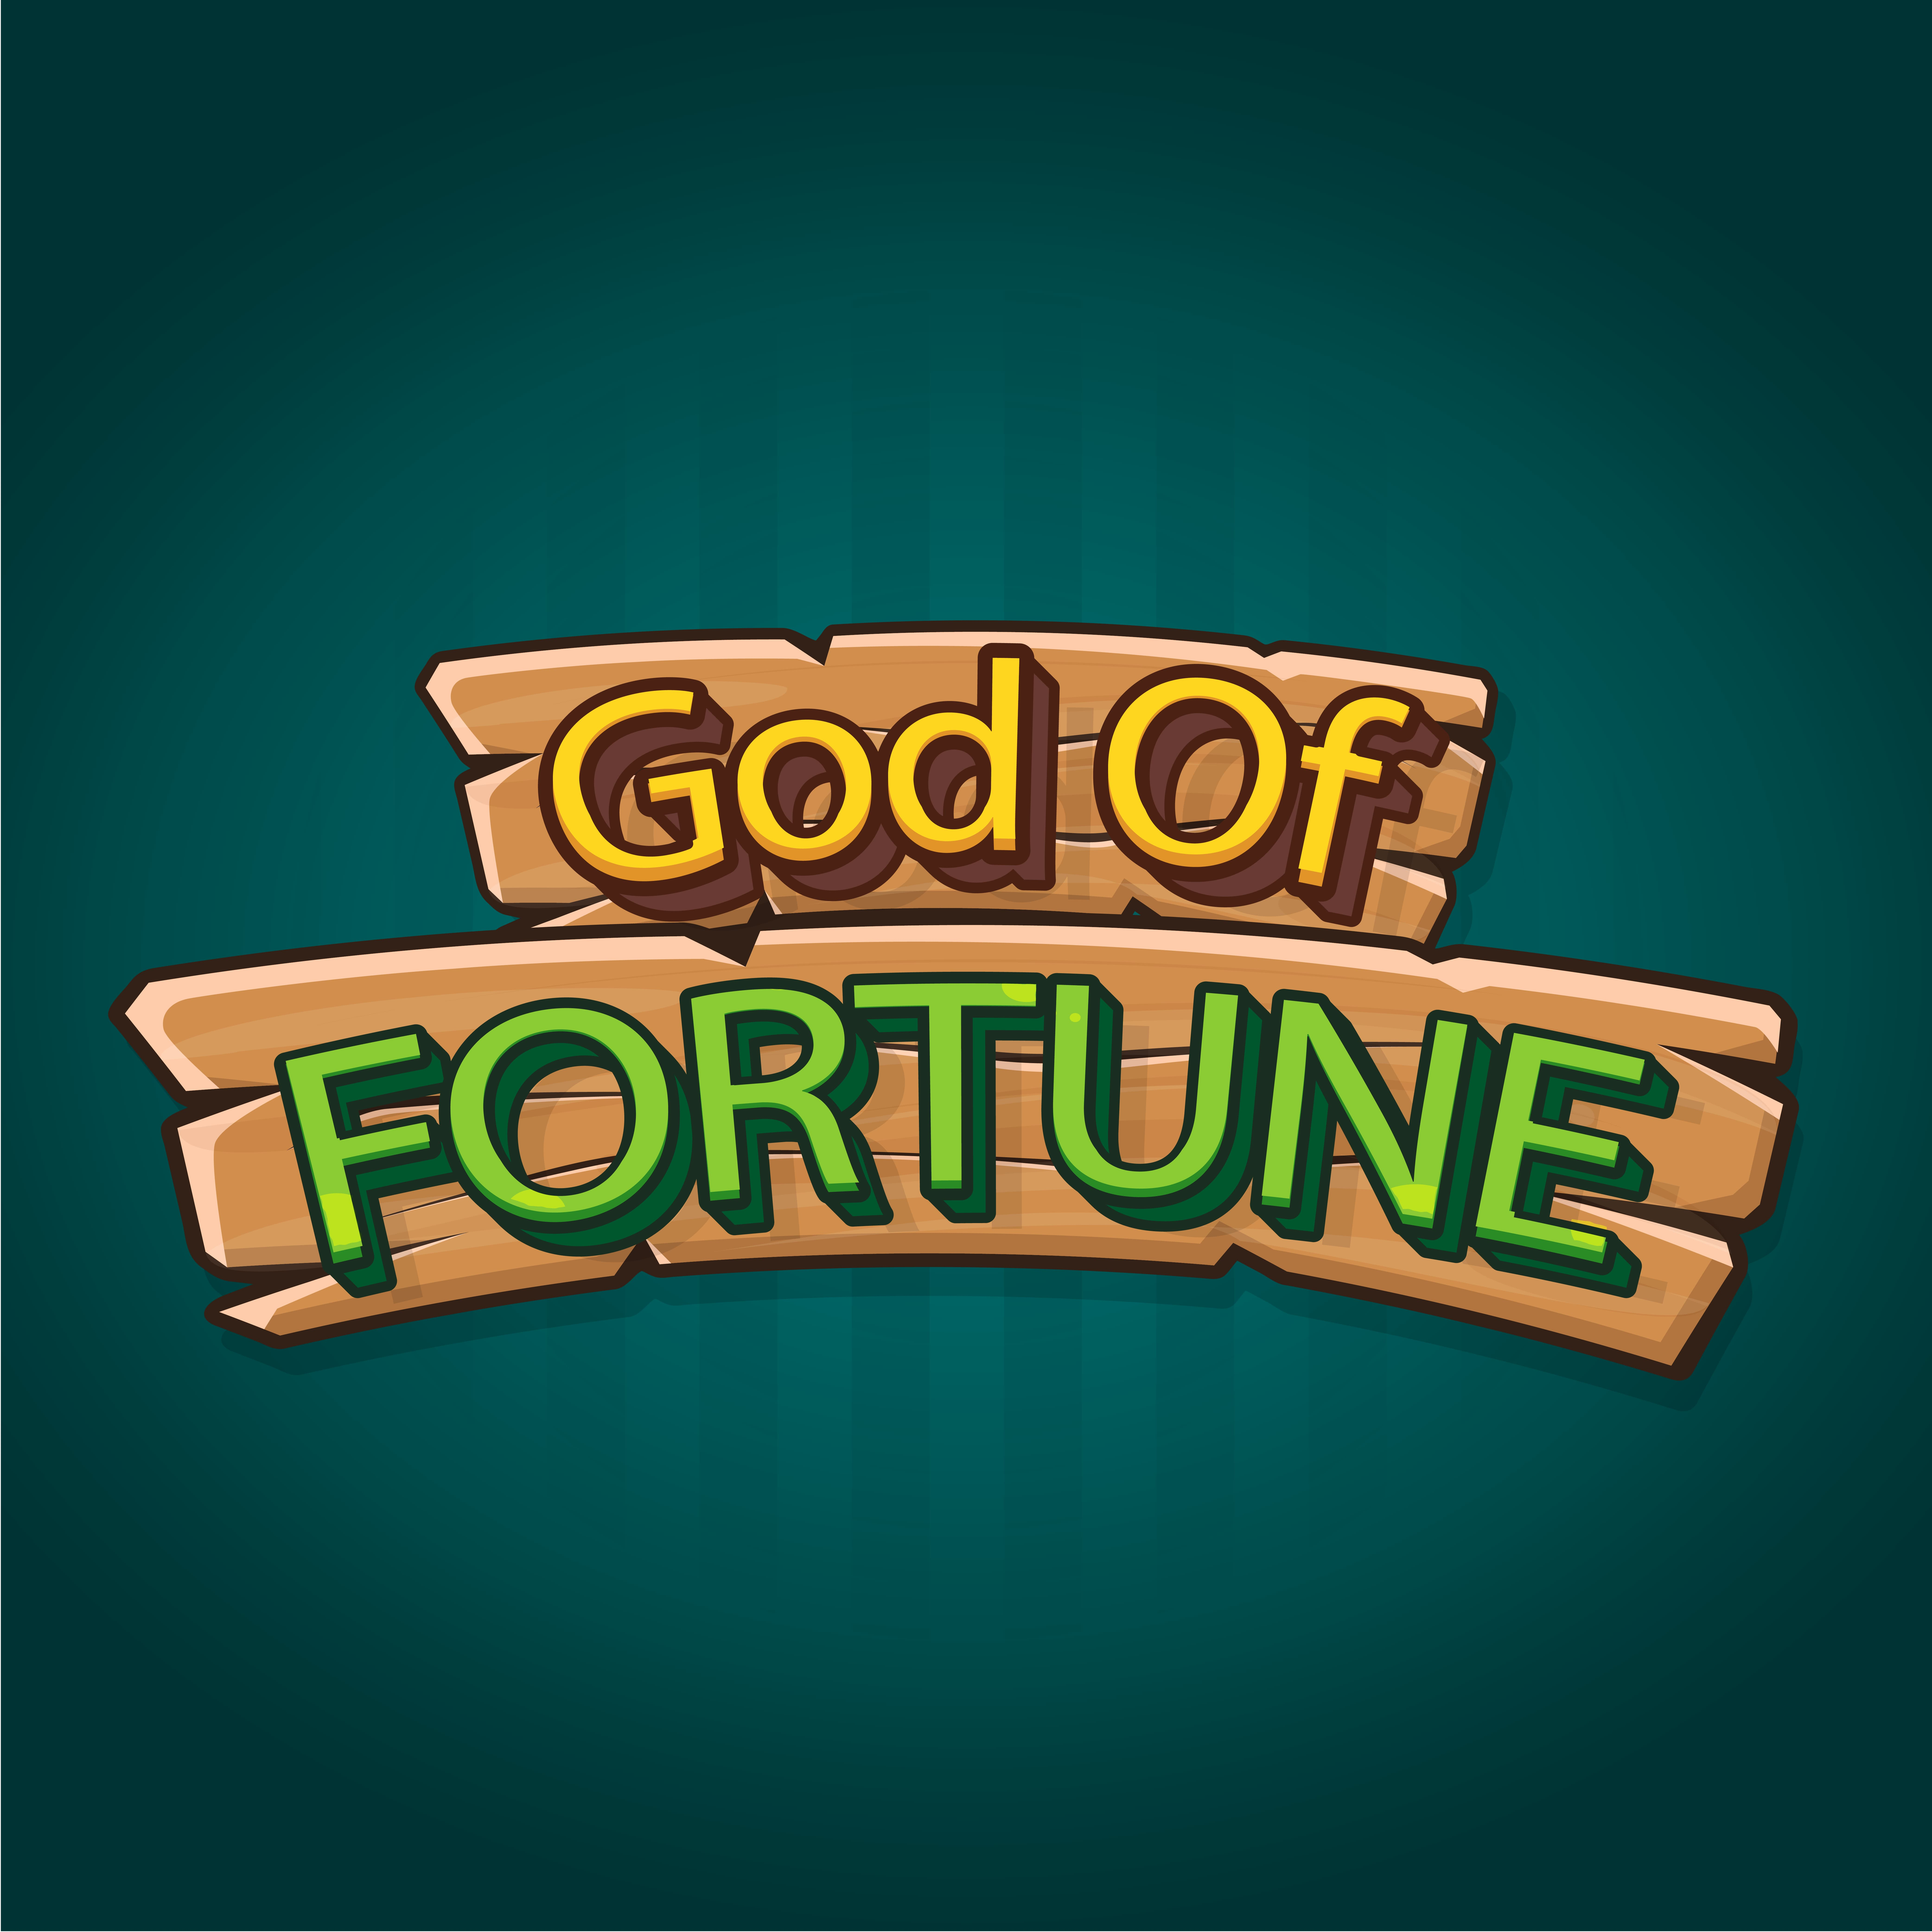 /god-of-fortune/